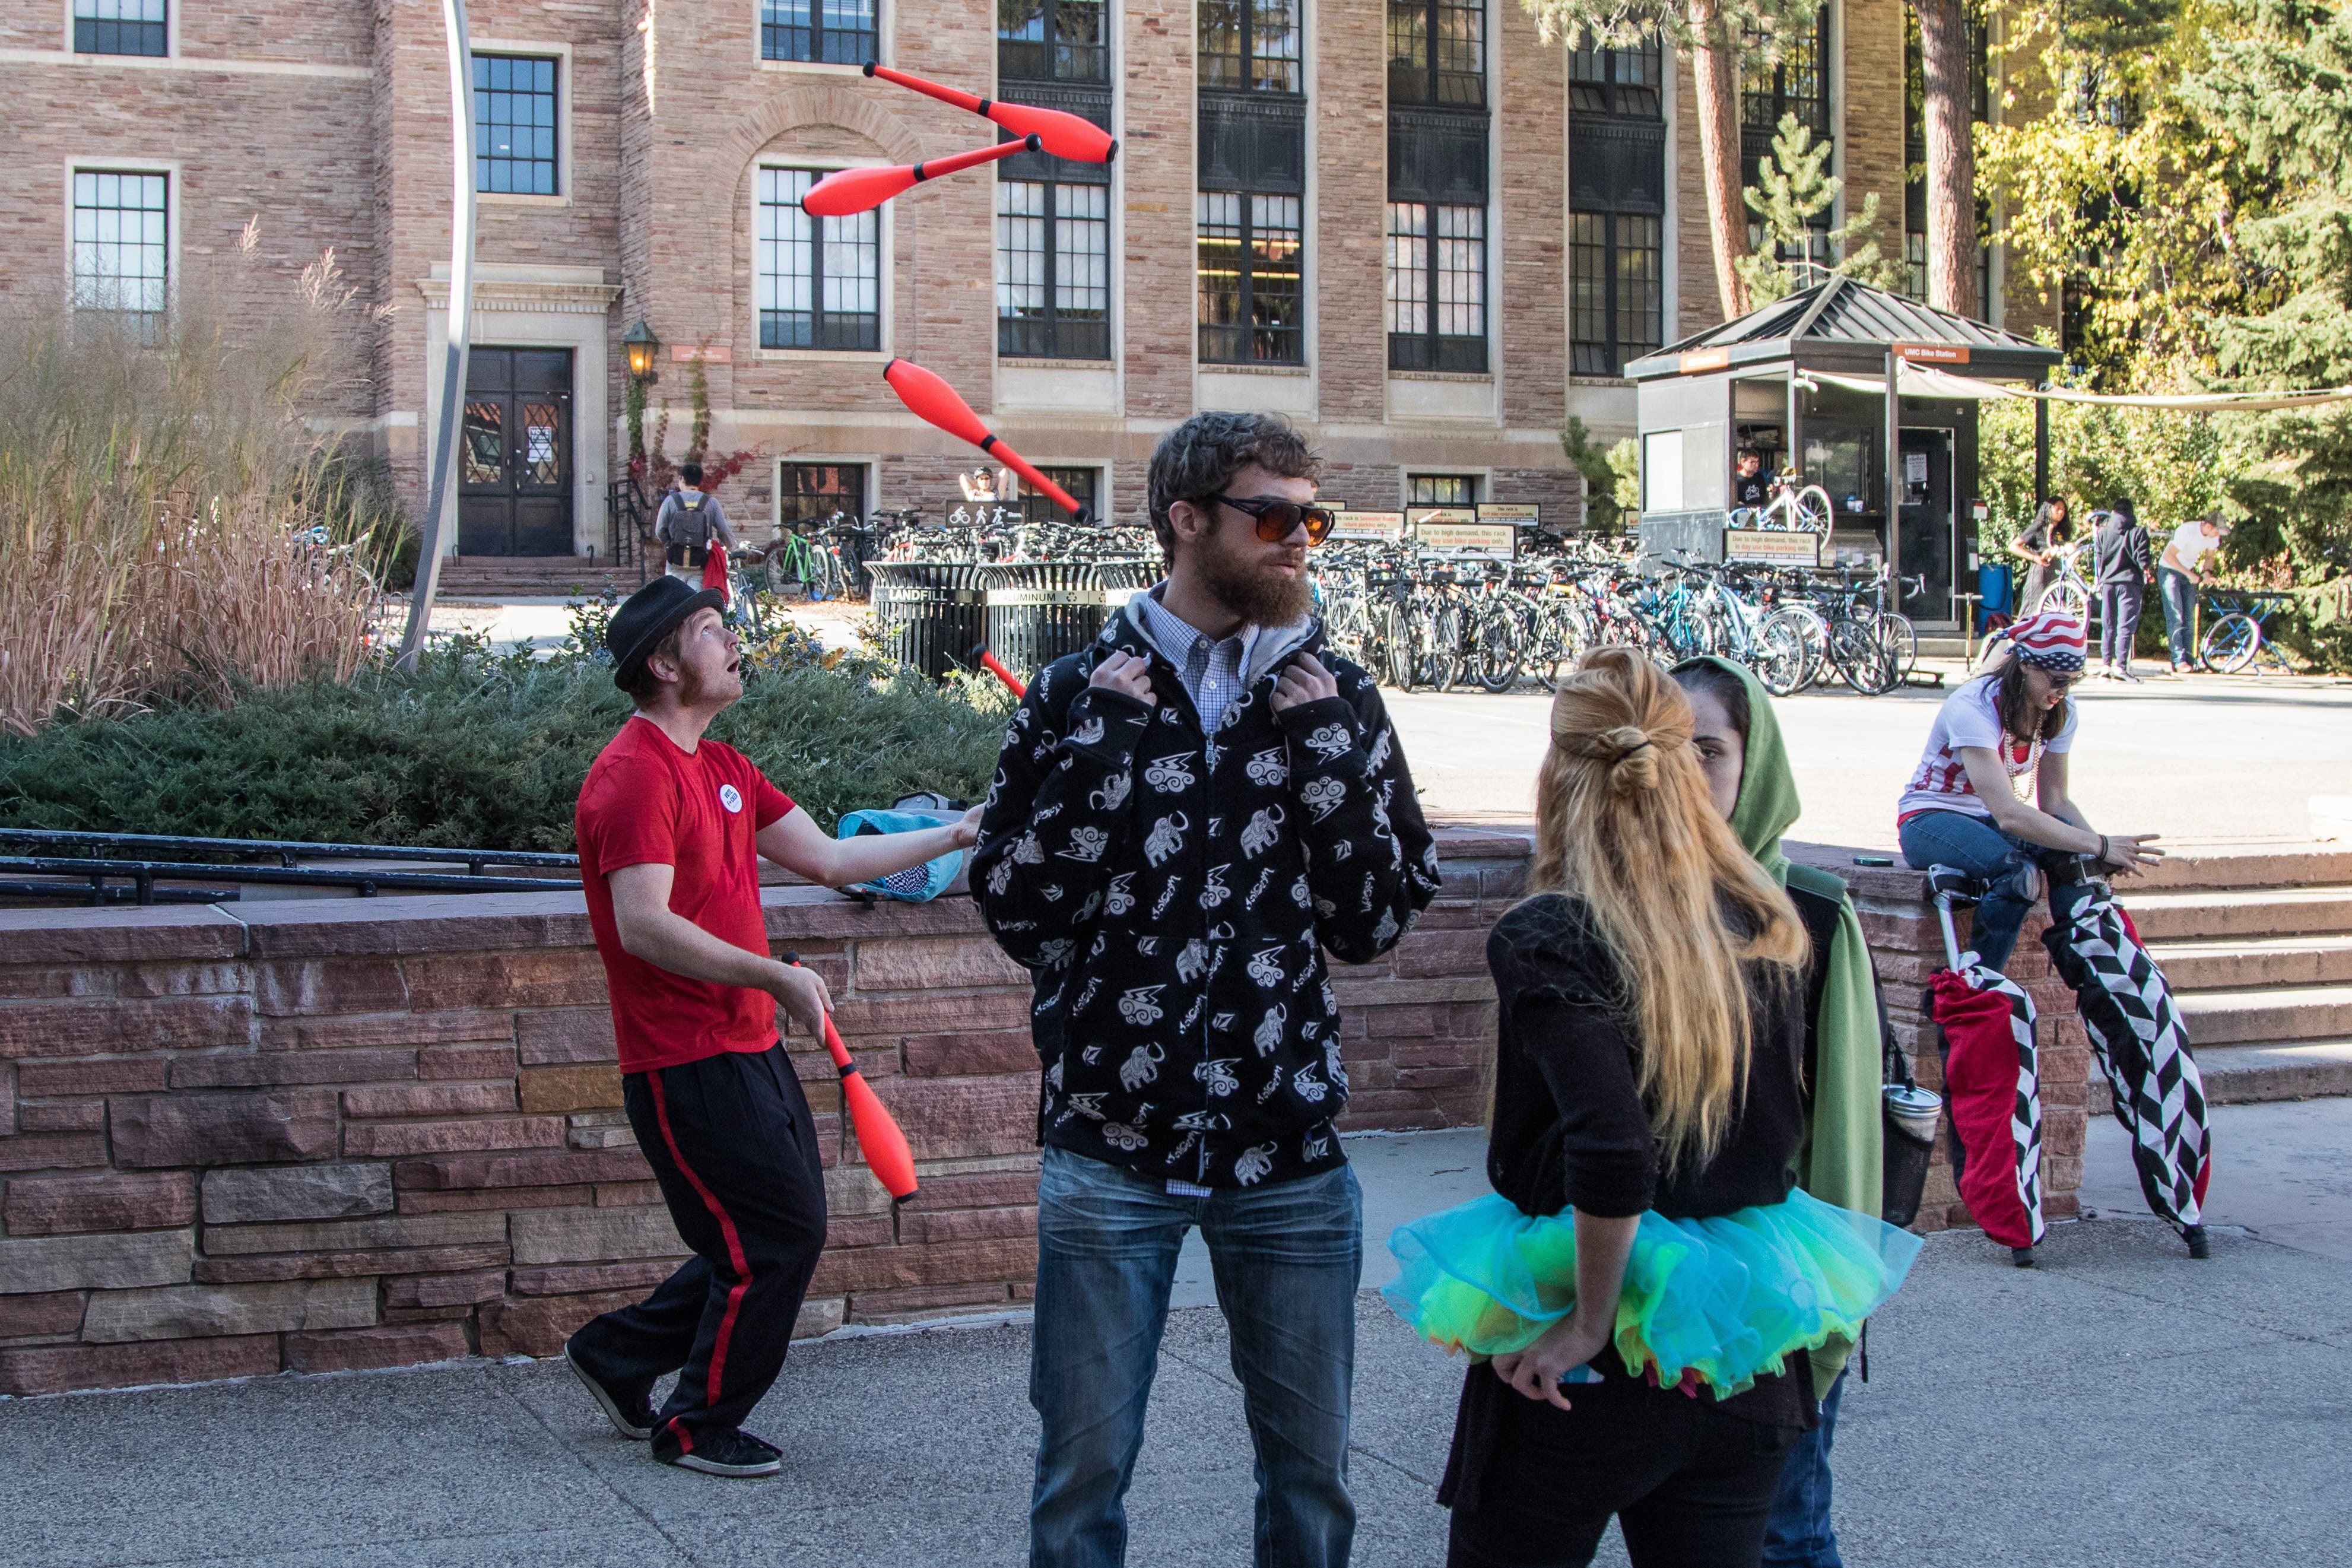 A juggler and stilt walker encourage voting while a representative, Ceely (center in tutu) tells students how to cast their ballot. Nov. 7, 2016 (Jackson Barnett/CU Independent)